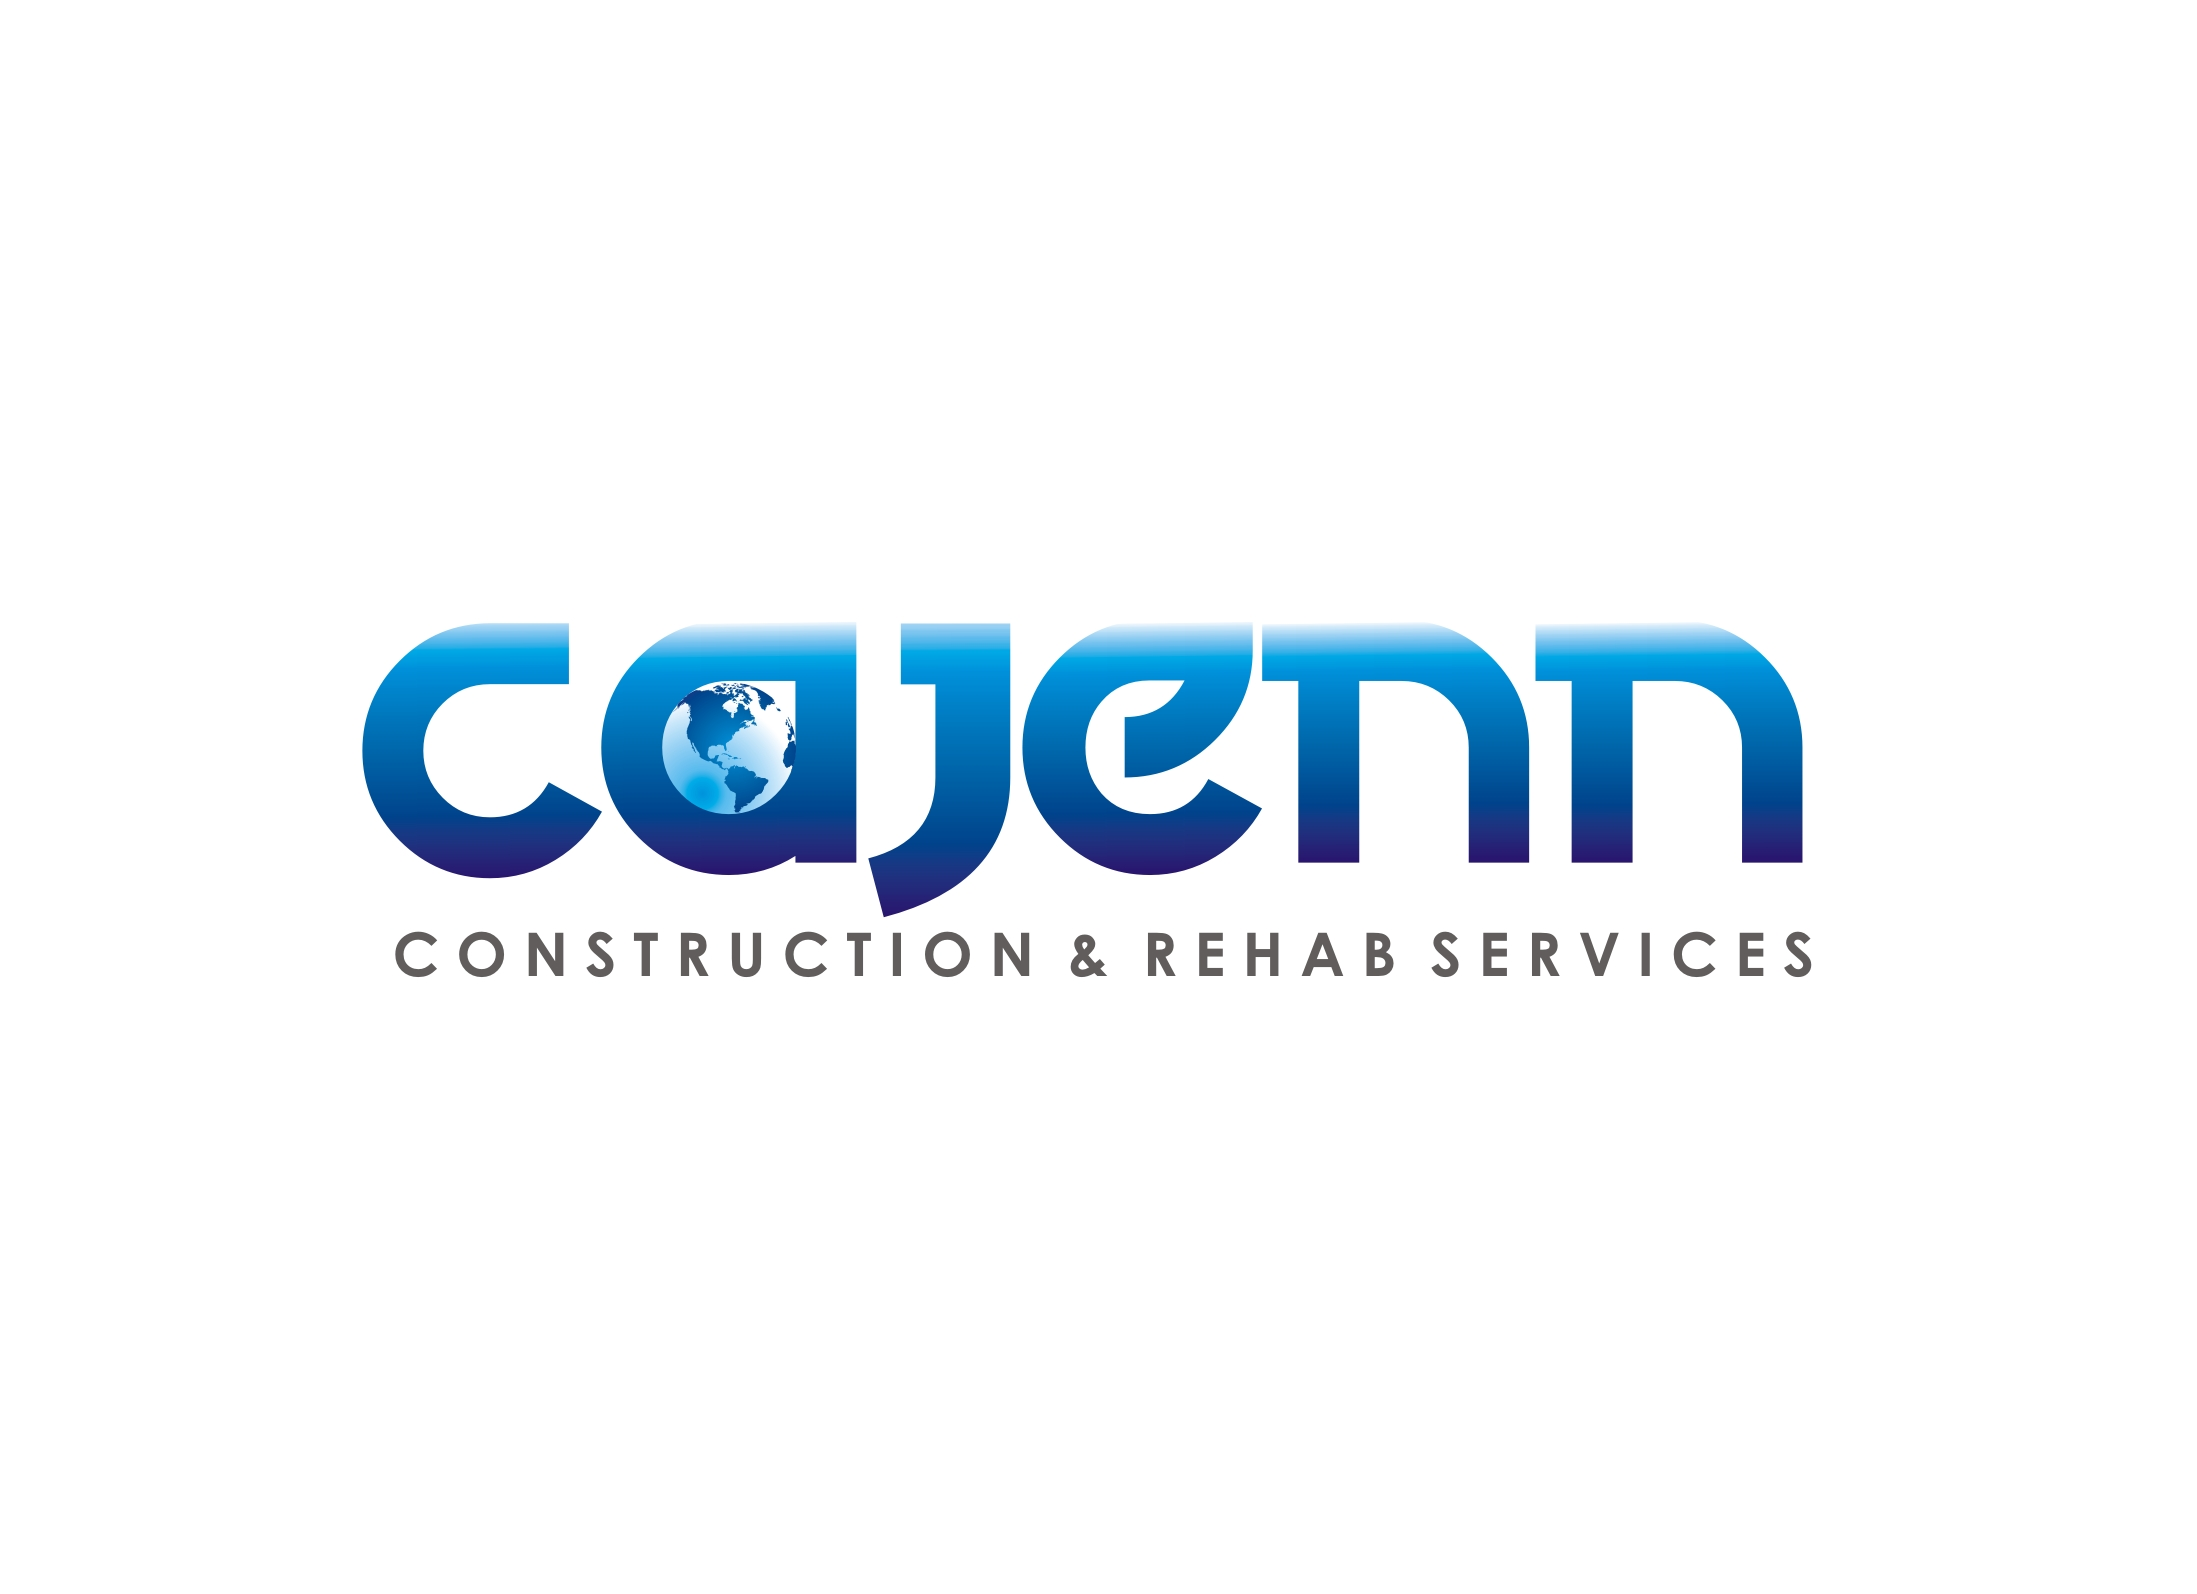 Logo Design by Zdravko Krulj - Entry No. 31 in the Logo Design Contest New Logo Design for CaJenn Construction & Rehab Services.